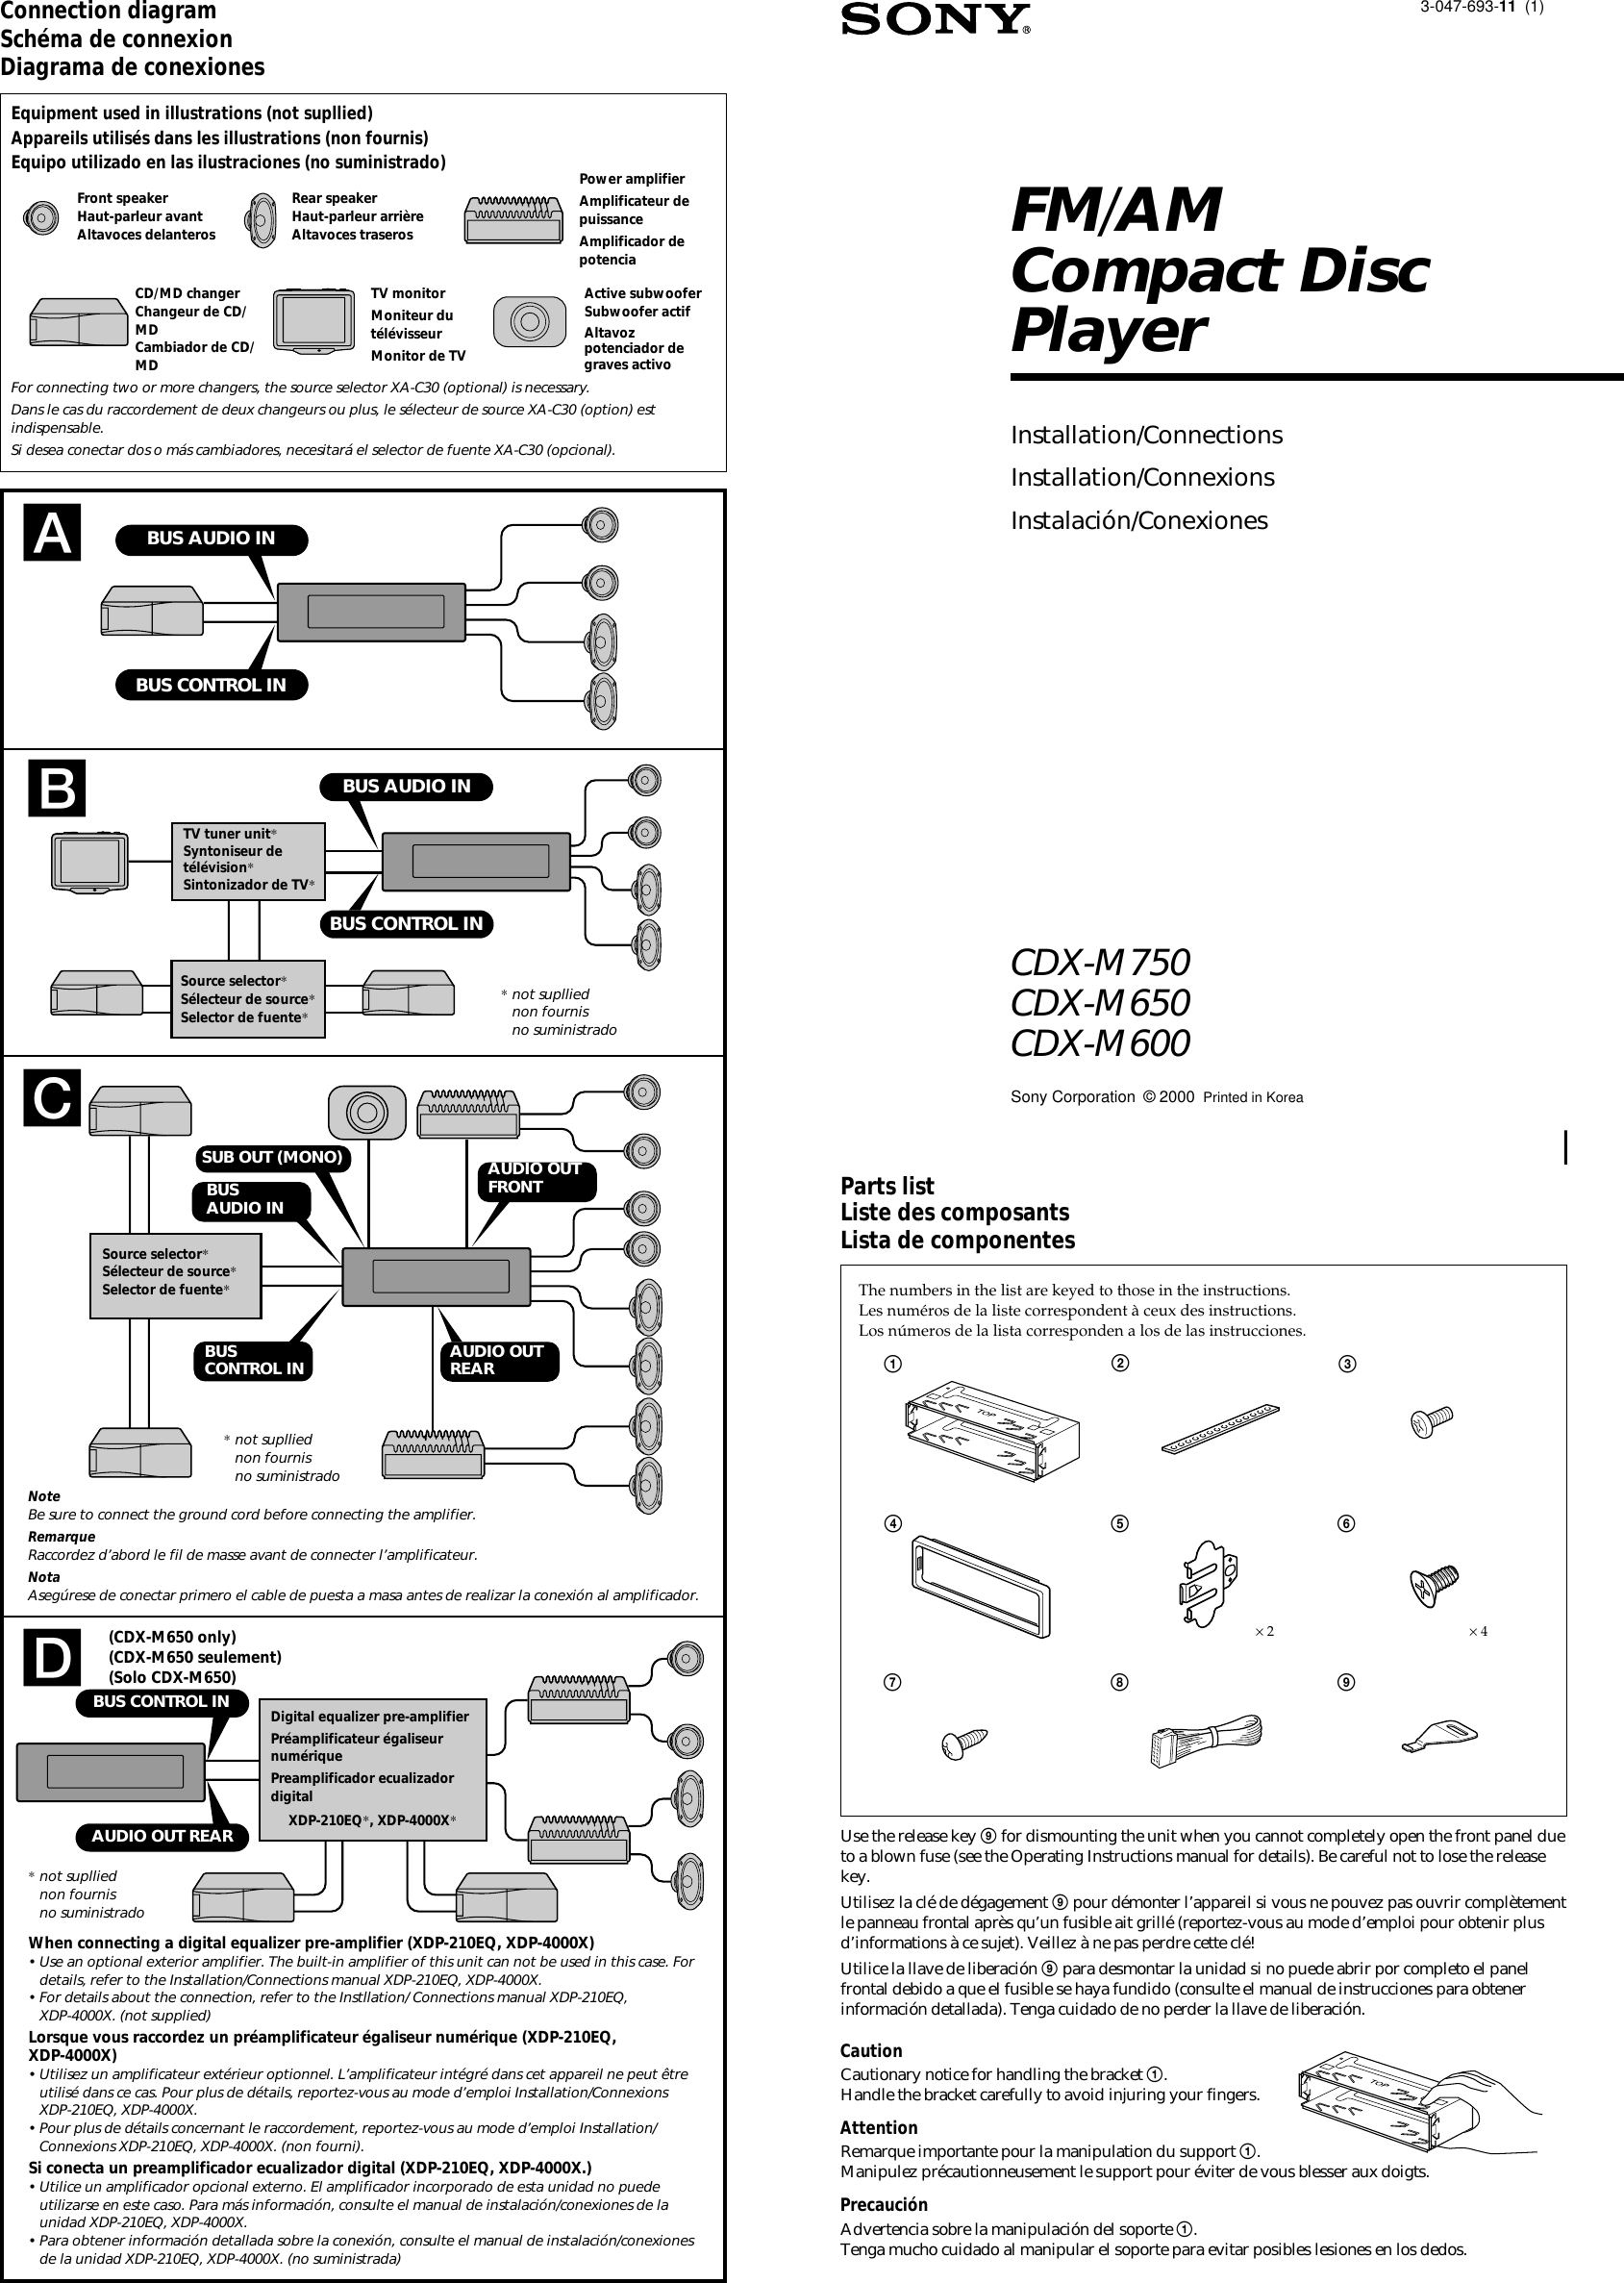 sony cdx m600 m750  cdx m650  cdx user manual installation  connection instructions cdxm600install